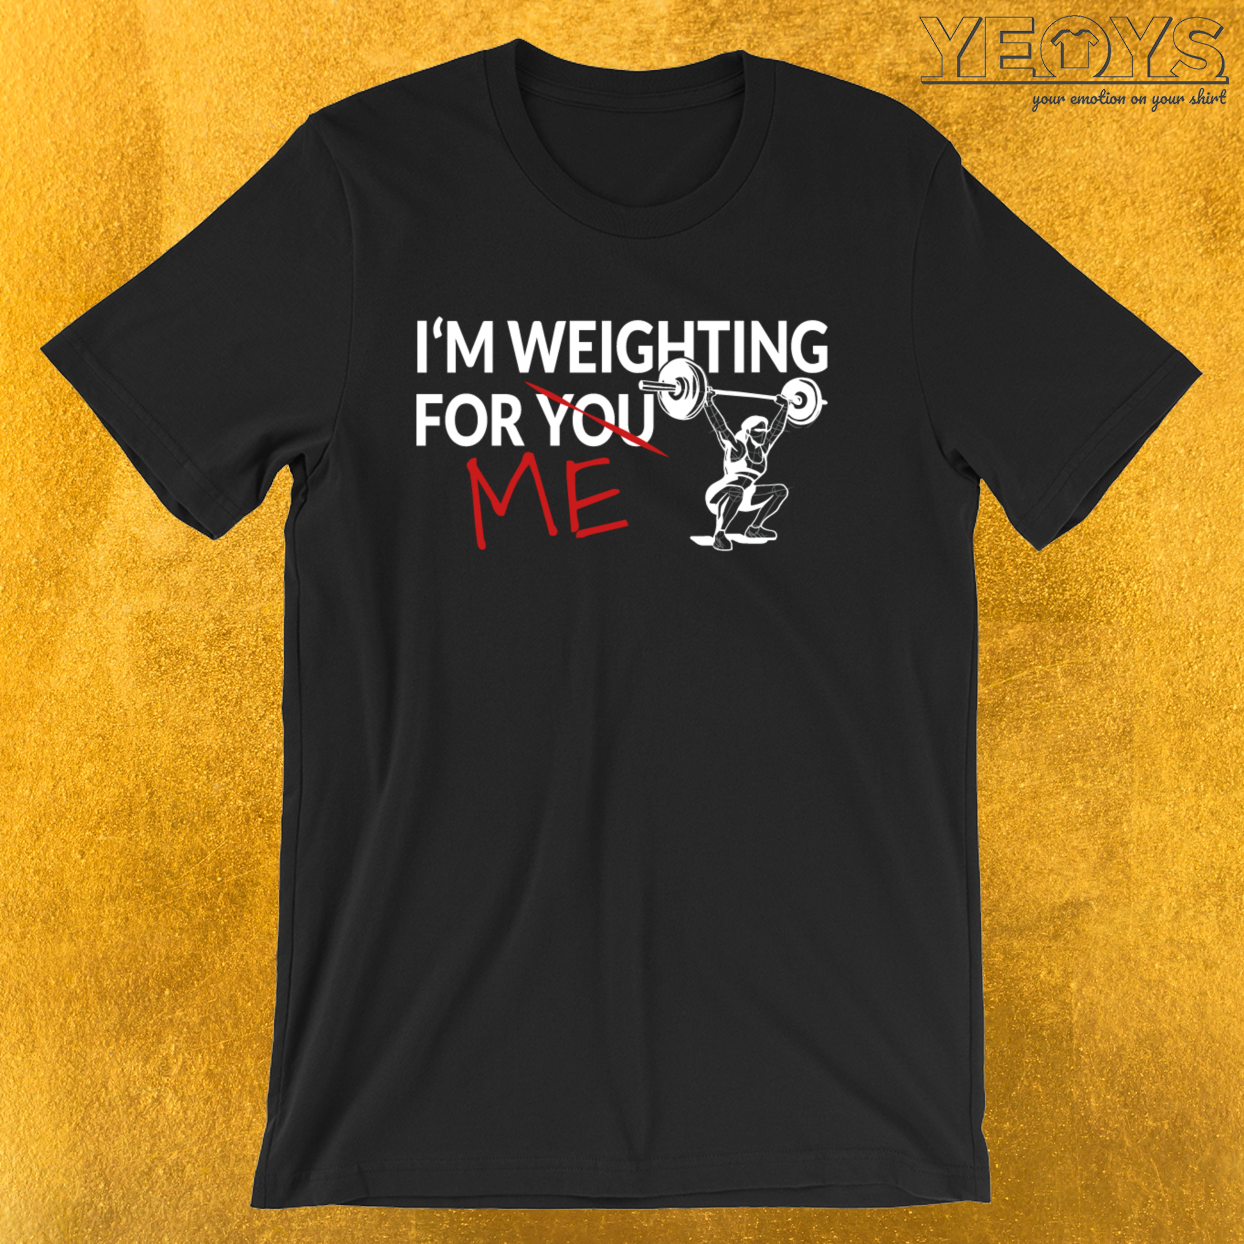 I Am Weighting For You Me – Weightlifting Tee